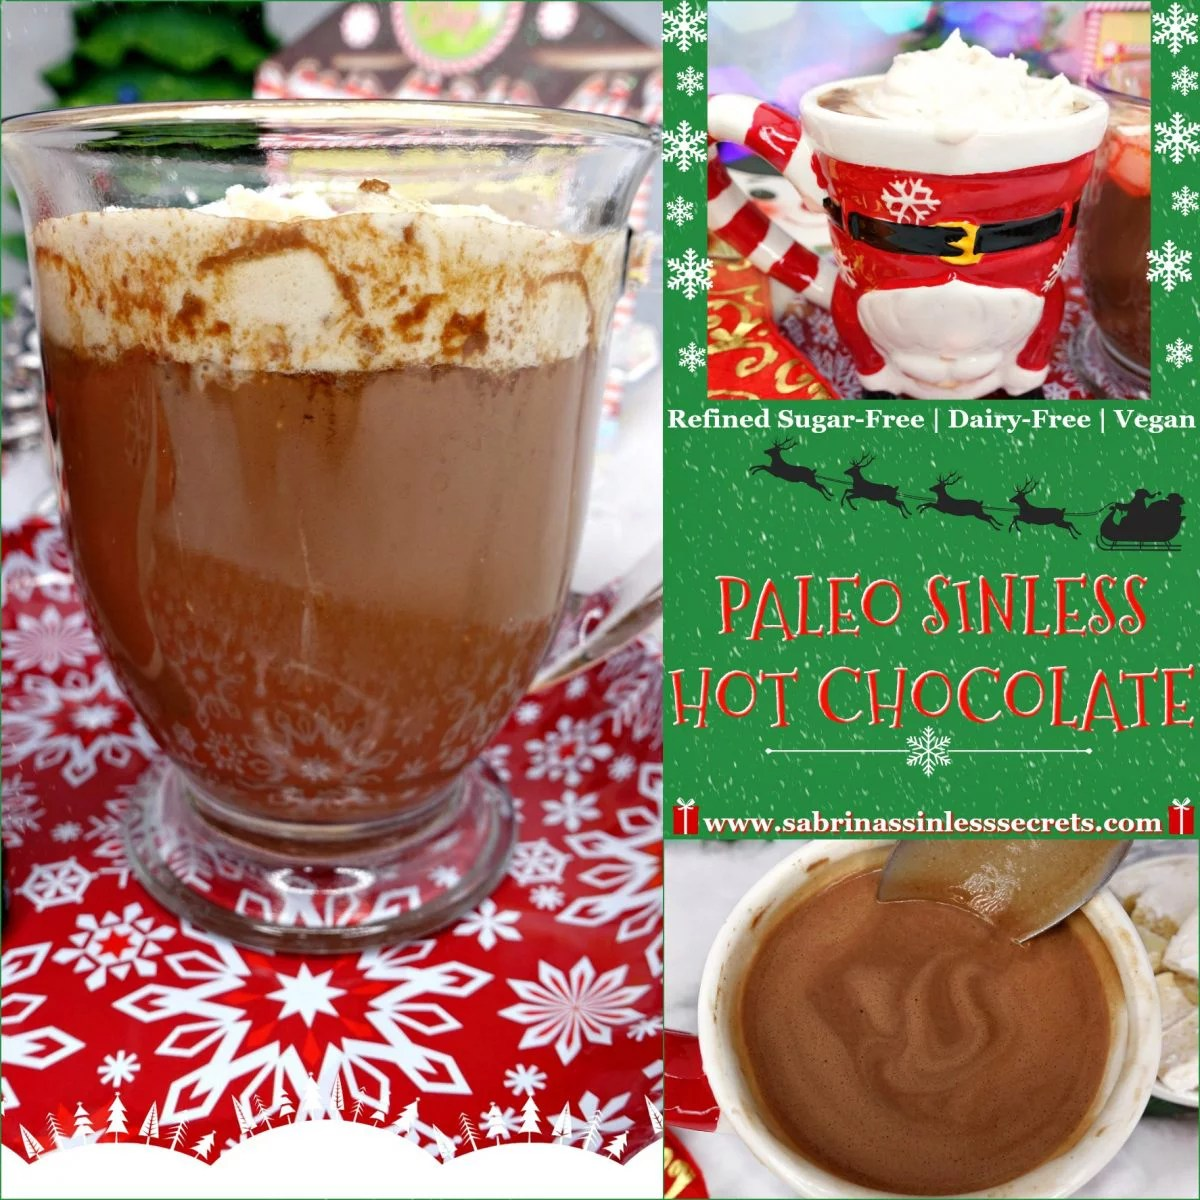 Paleo Sinless Hot Chocolate